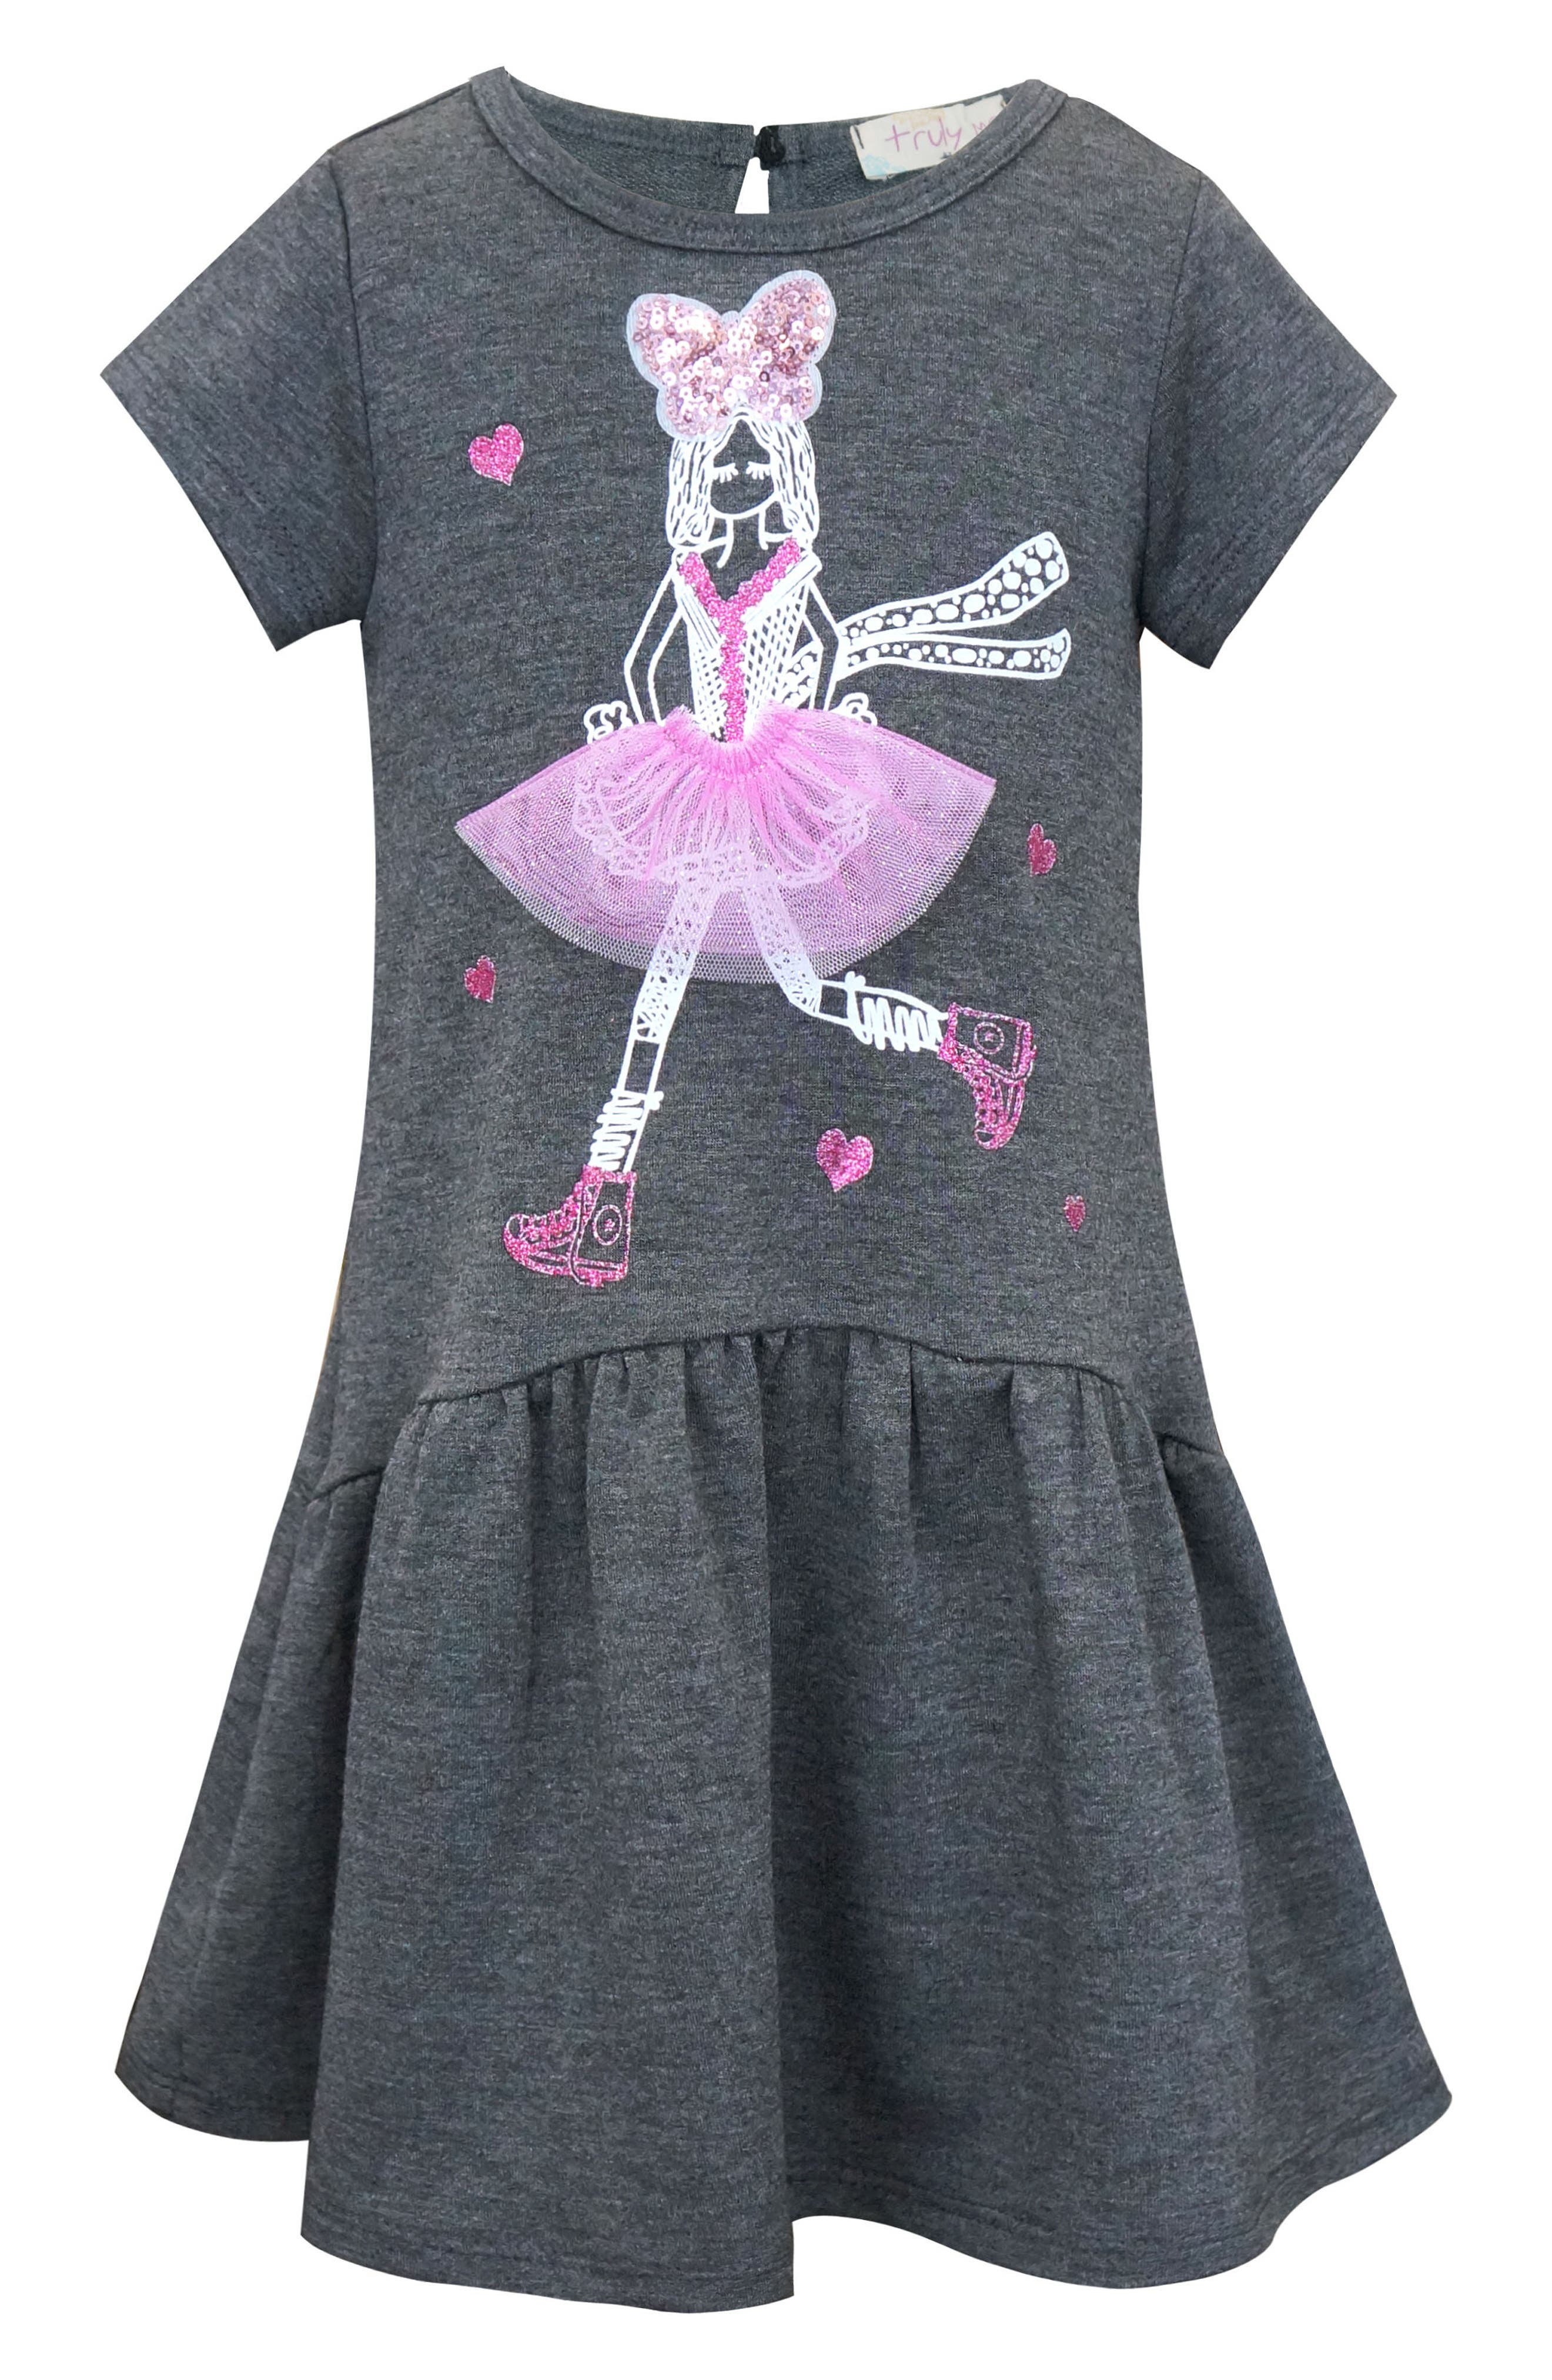 Main Image - Truly Me Dimensional Graphic Dress (Toddler Girls & Little Girls) (Special Purchase)